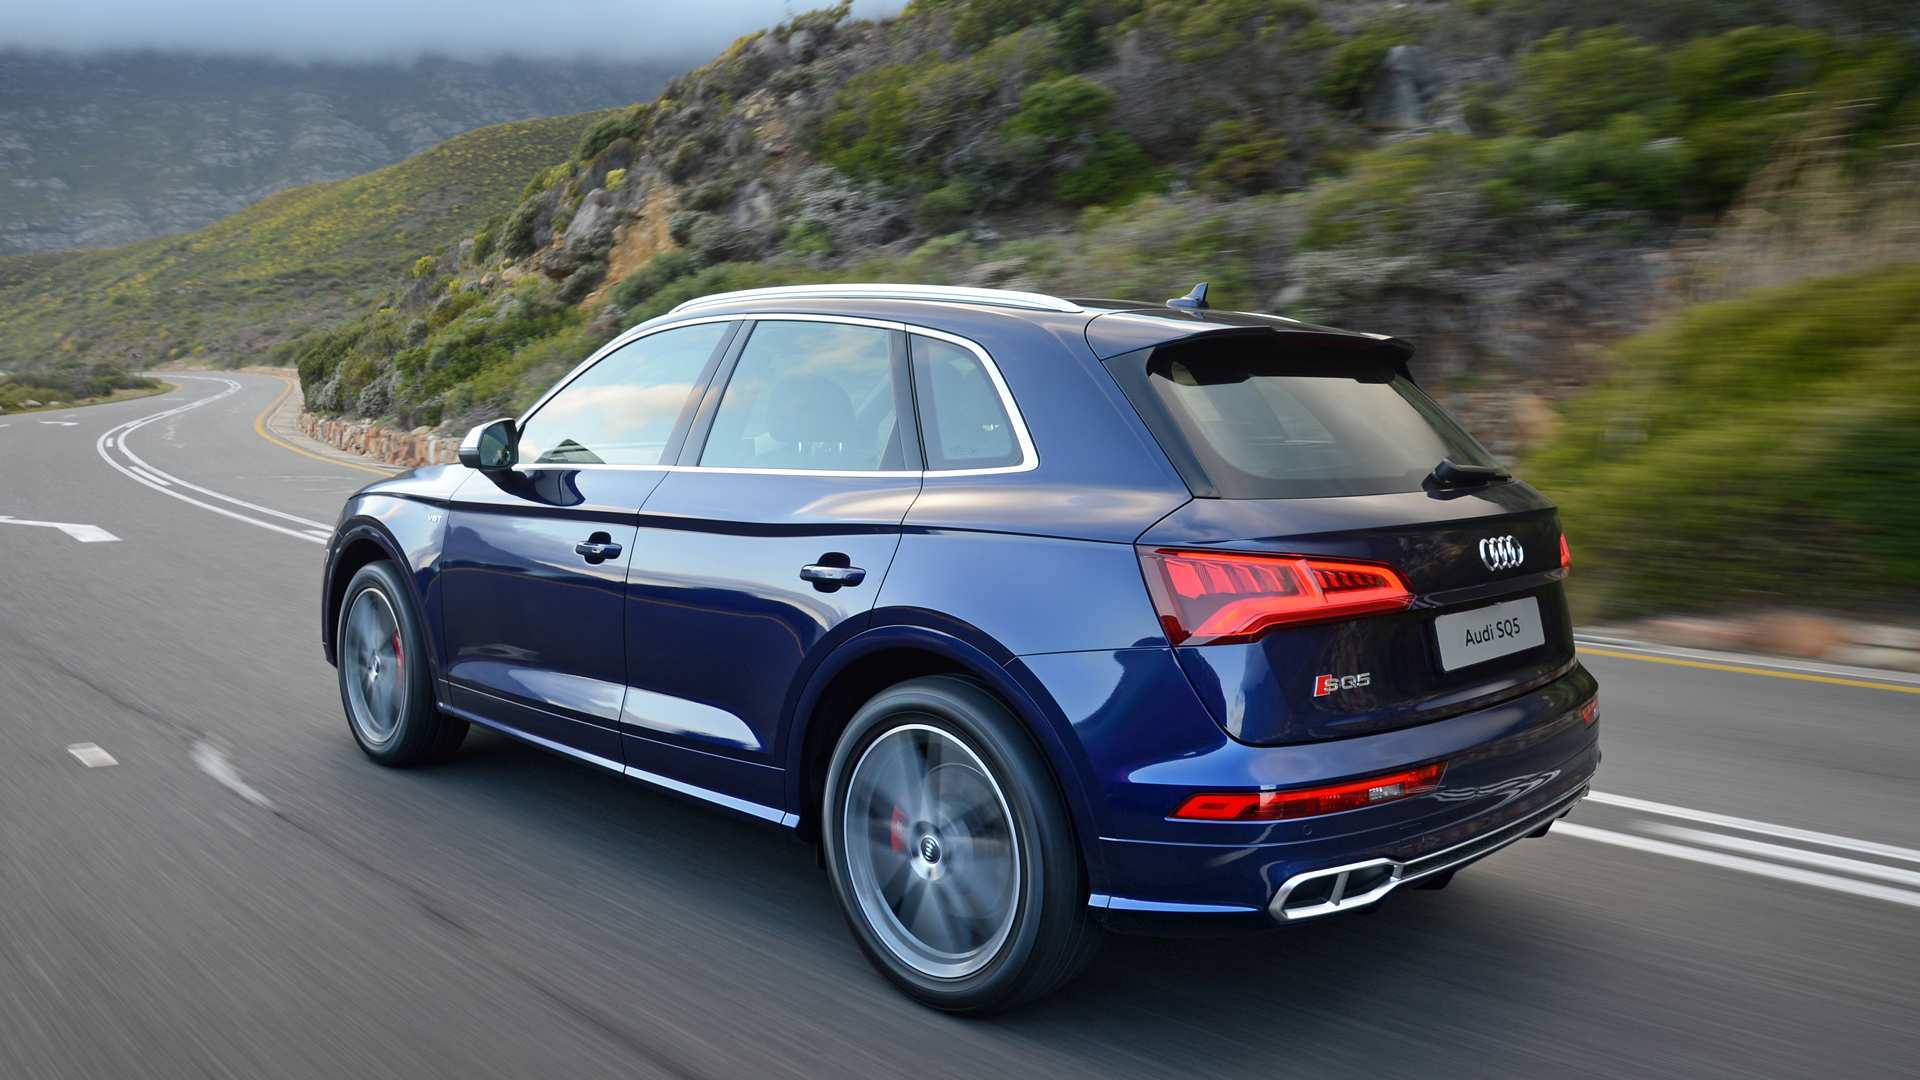 49 Best Review The Audi Q5 2019 Vs 2018 Overview And Price Wallpaper with The Audi Q5 2019 Vs 2018 Overview And Price